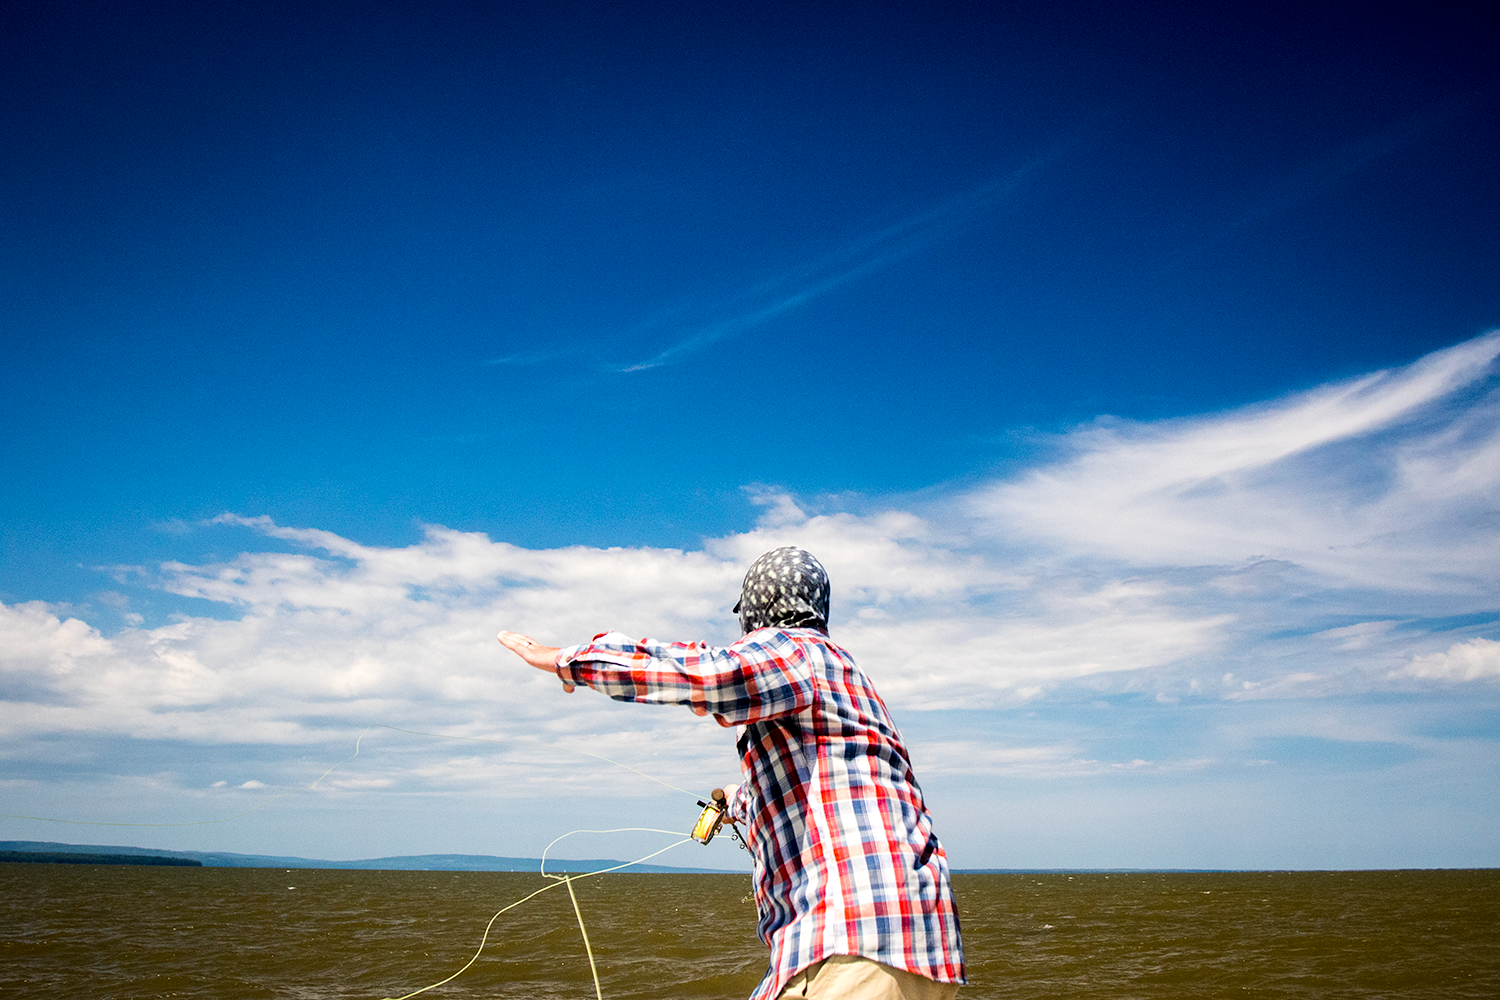 Fishing on the Bay usually means fishing in the wind.